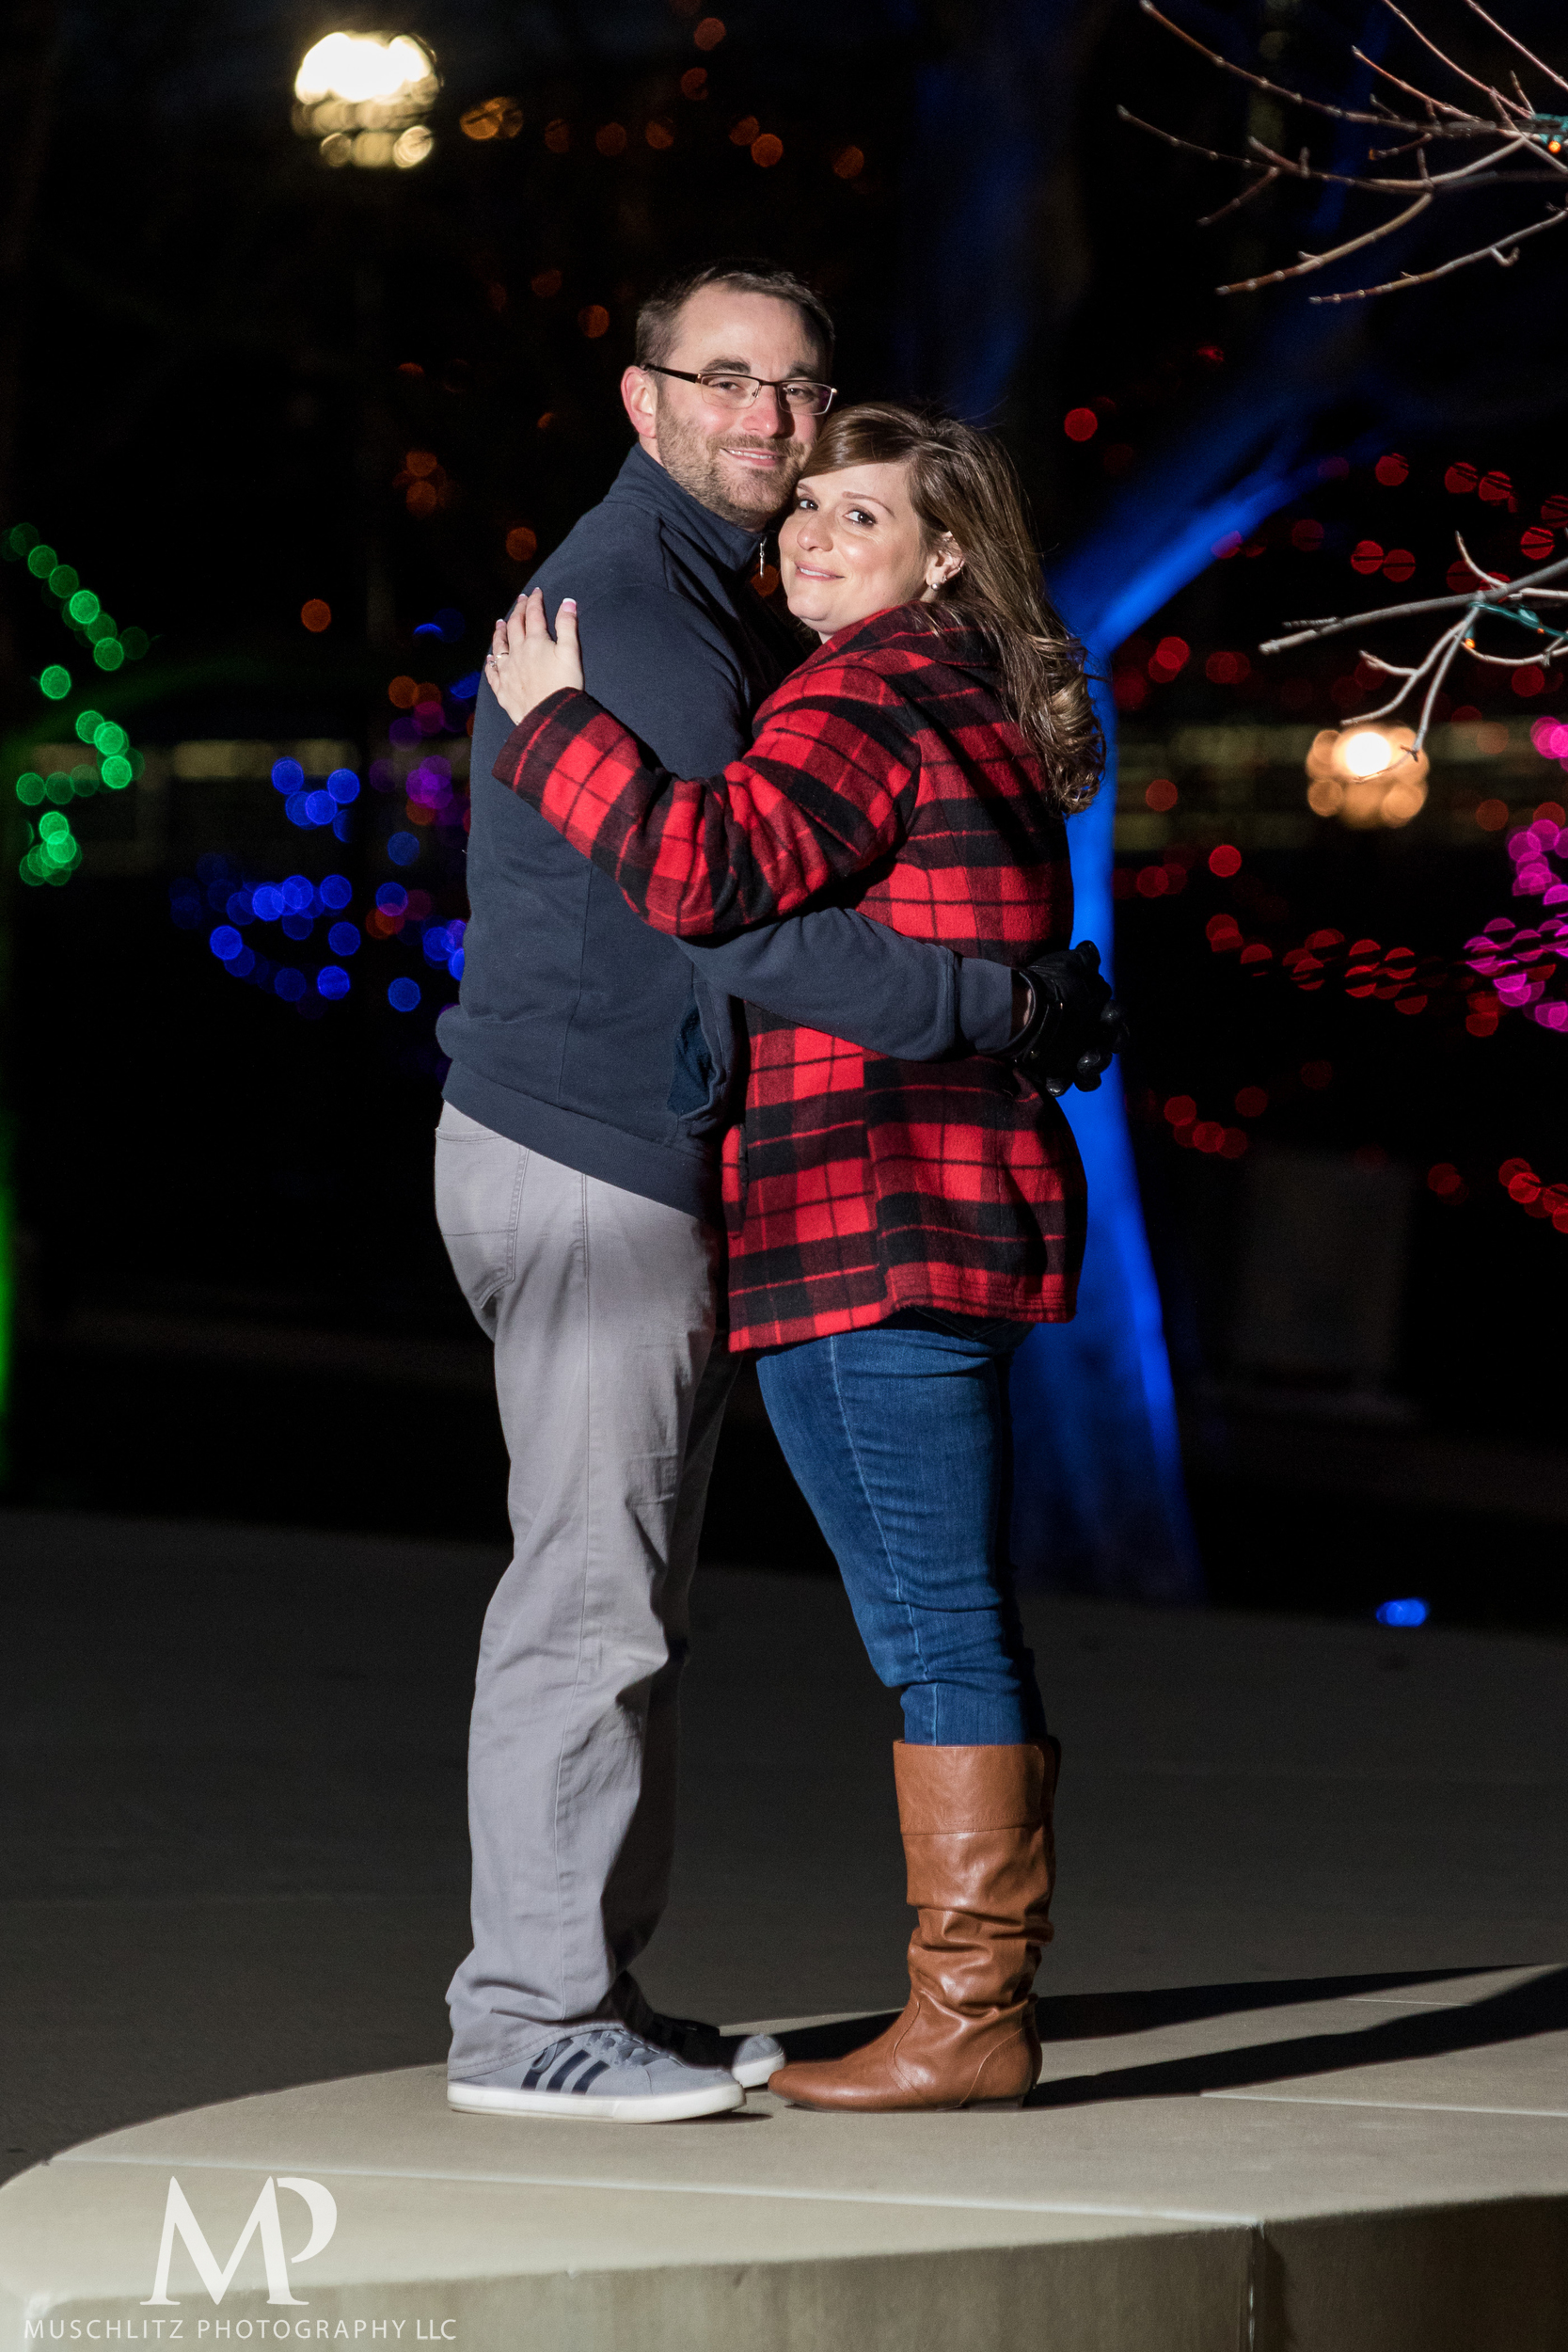 bicentennial-park-engagement-session-holiday-portraits-columbus-ohio-051.JPG